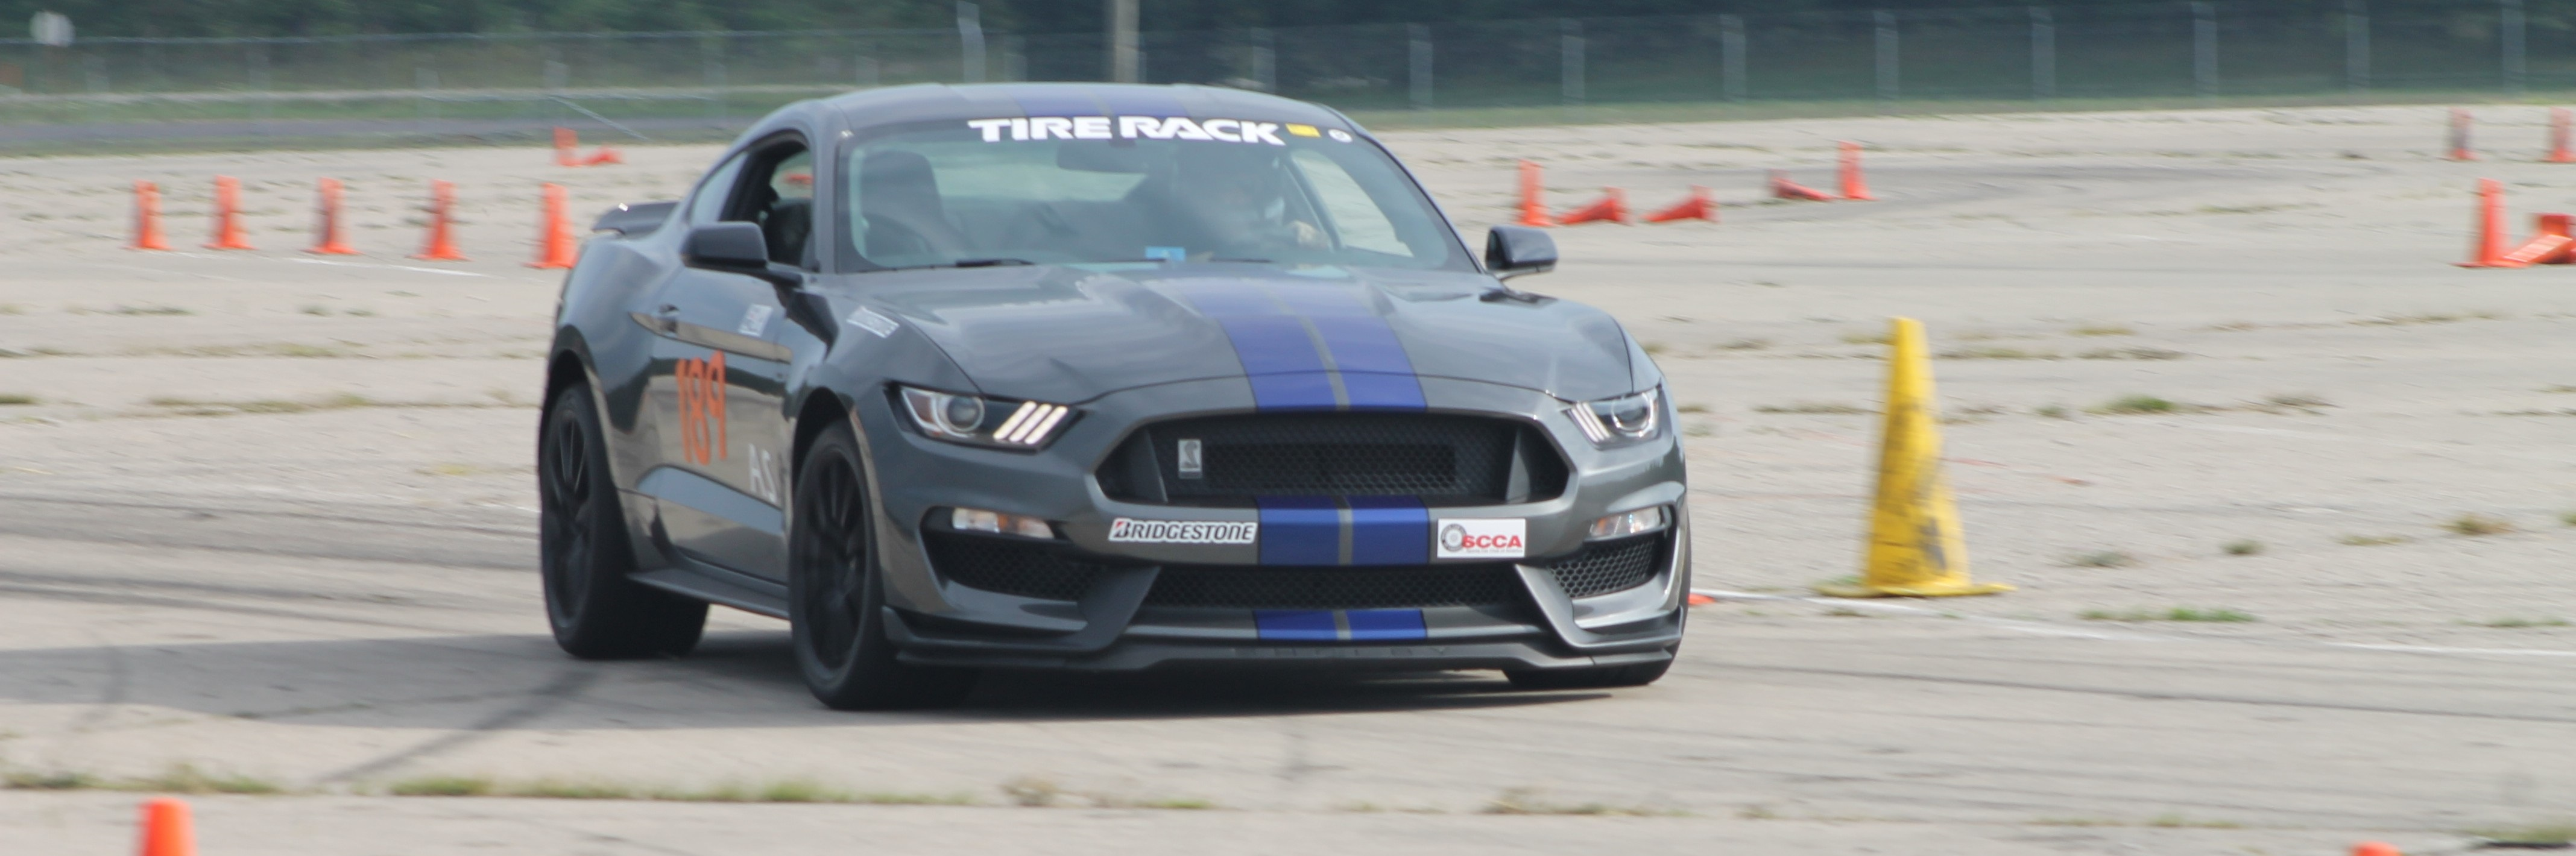 Registration is open for the Fall Into Autumn Charity Autocross